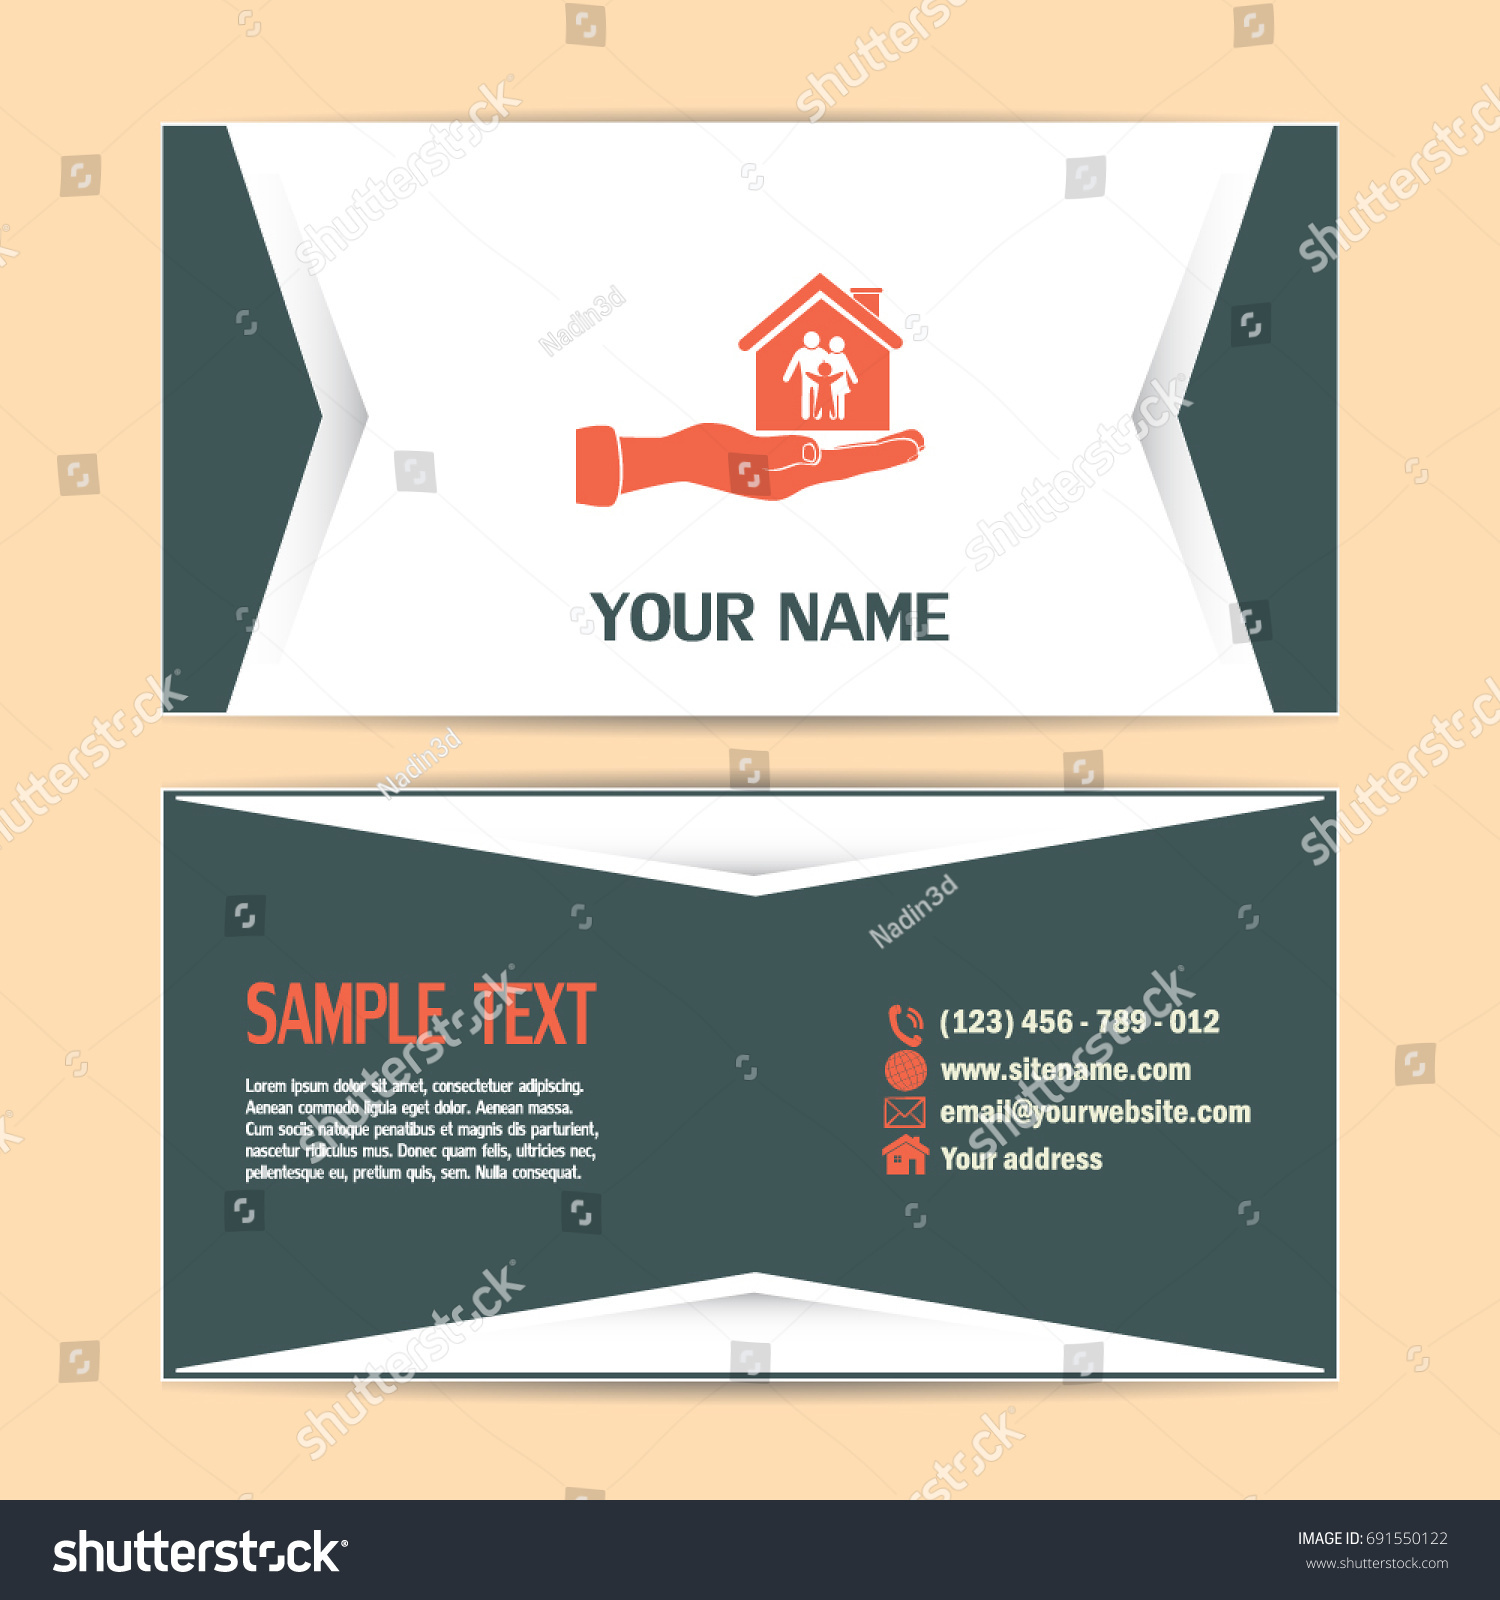 Business Cards Design Concept Illustration Safety Stock Vector ...